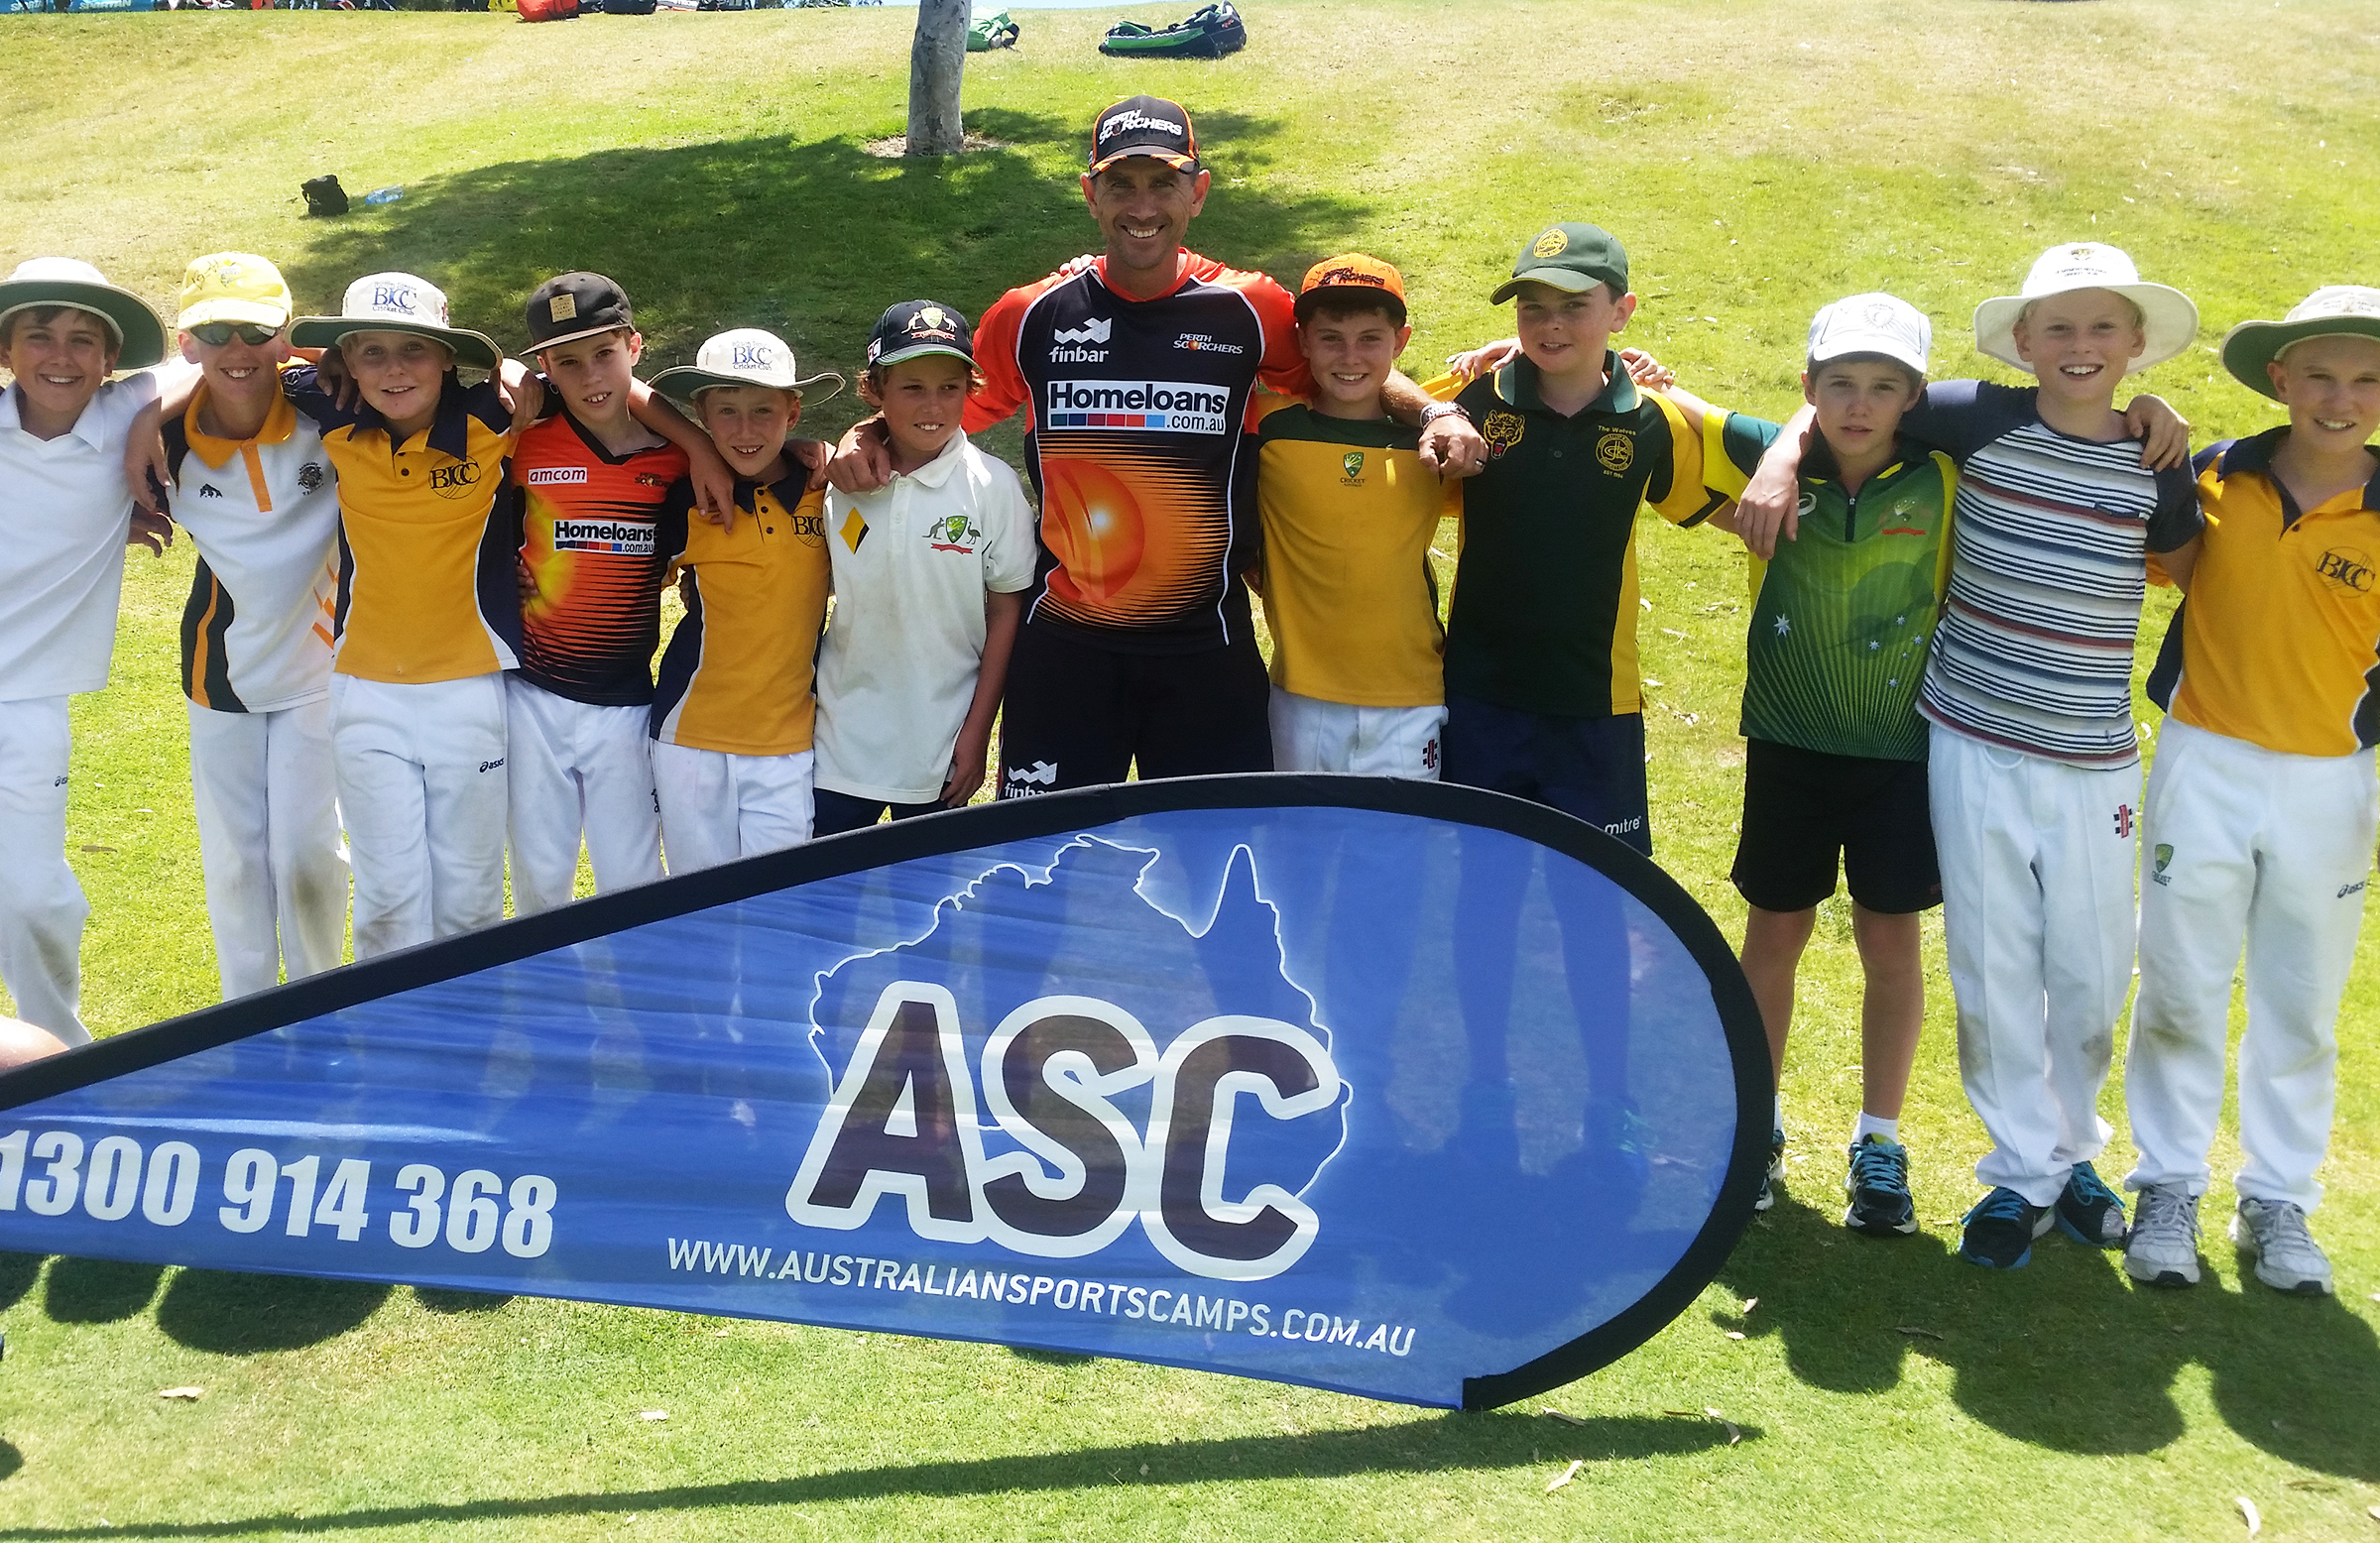 Justin Langer with some of the eager kids